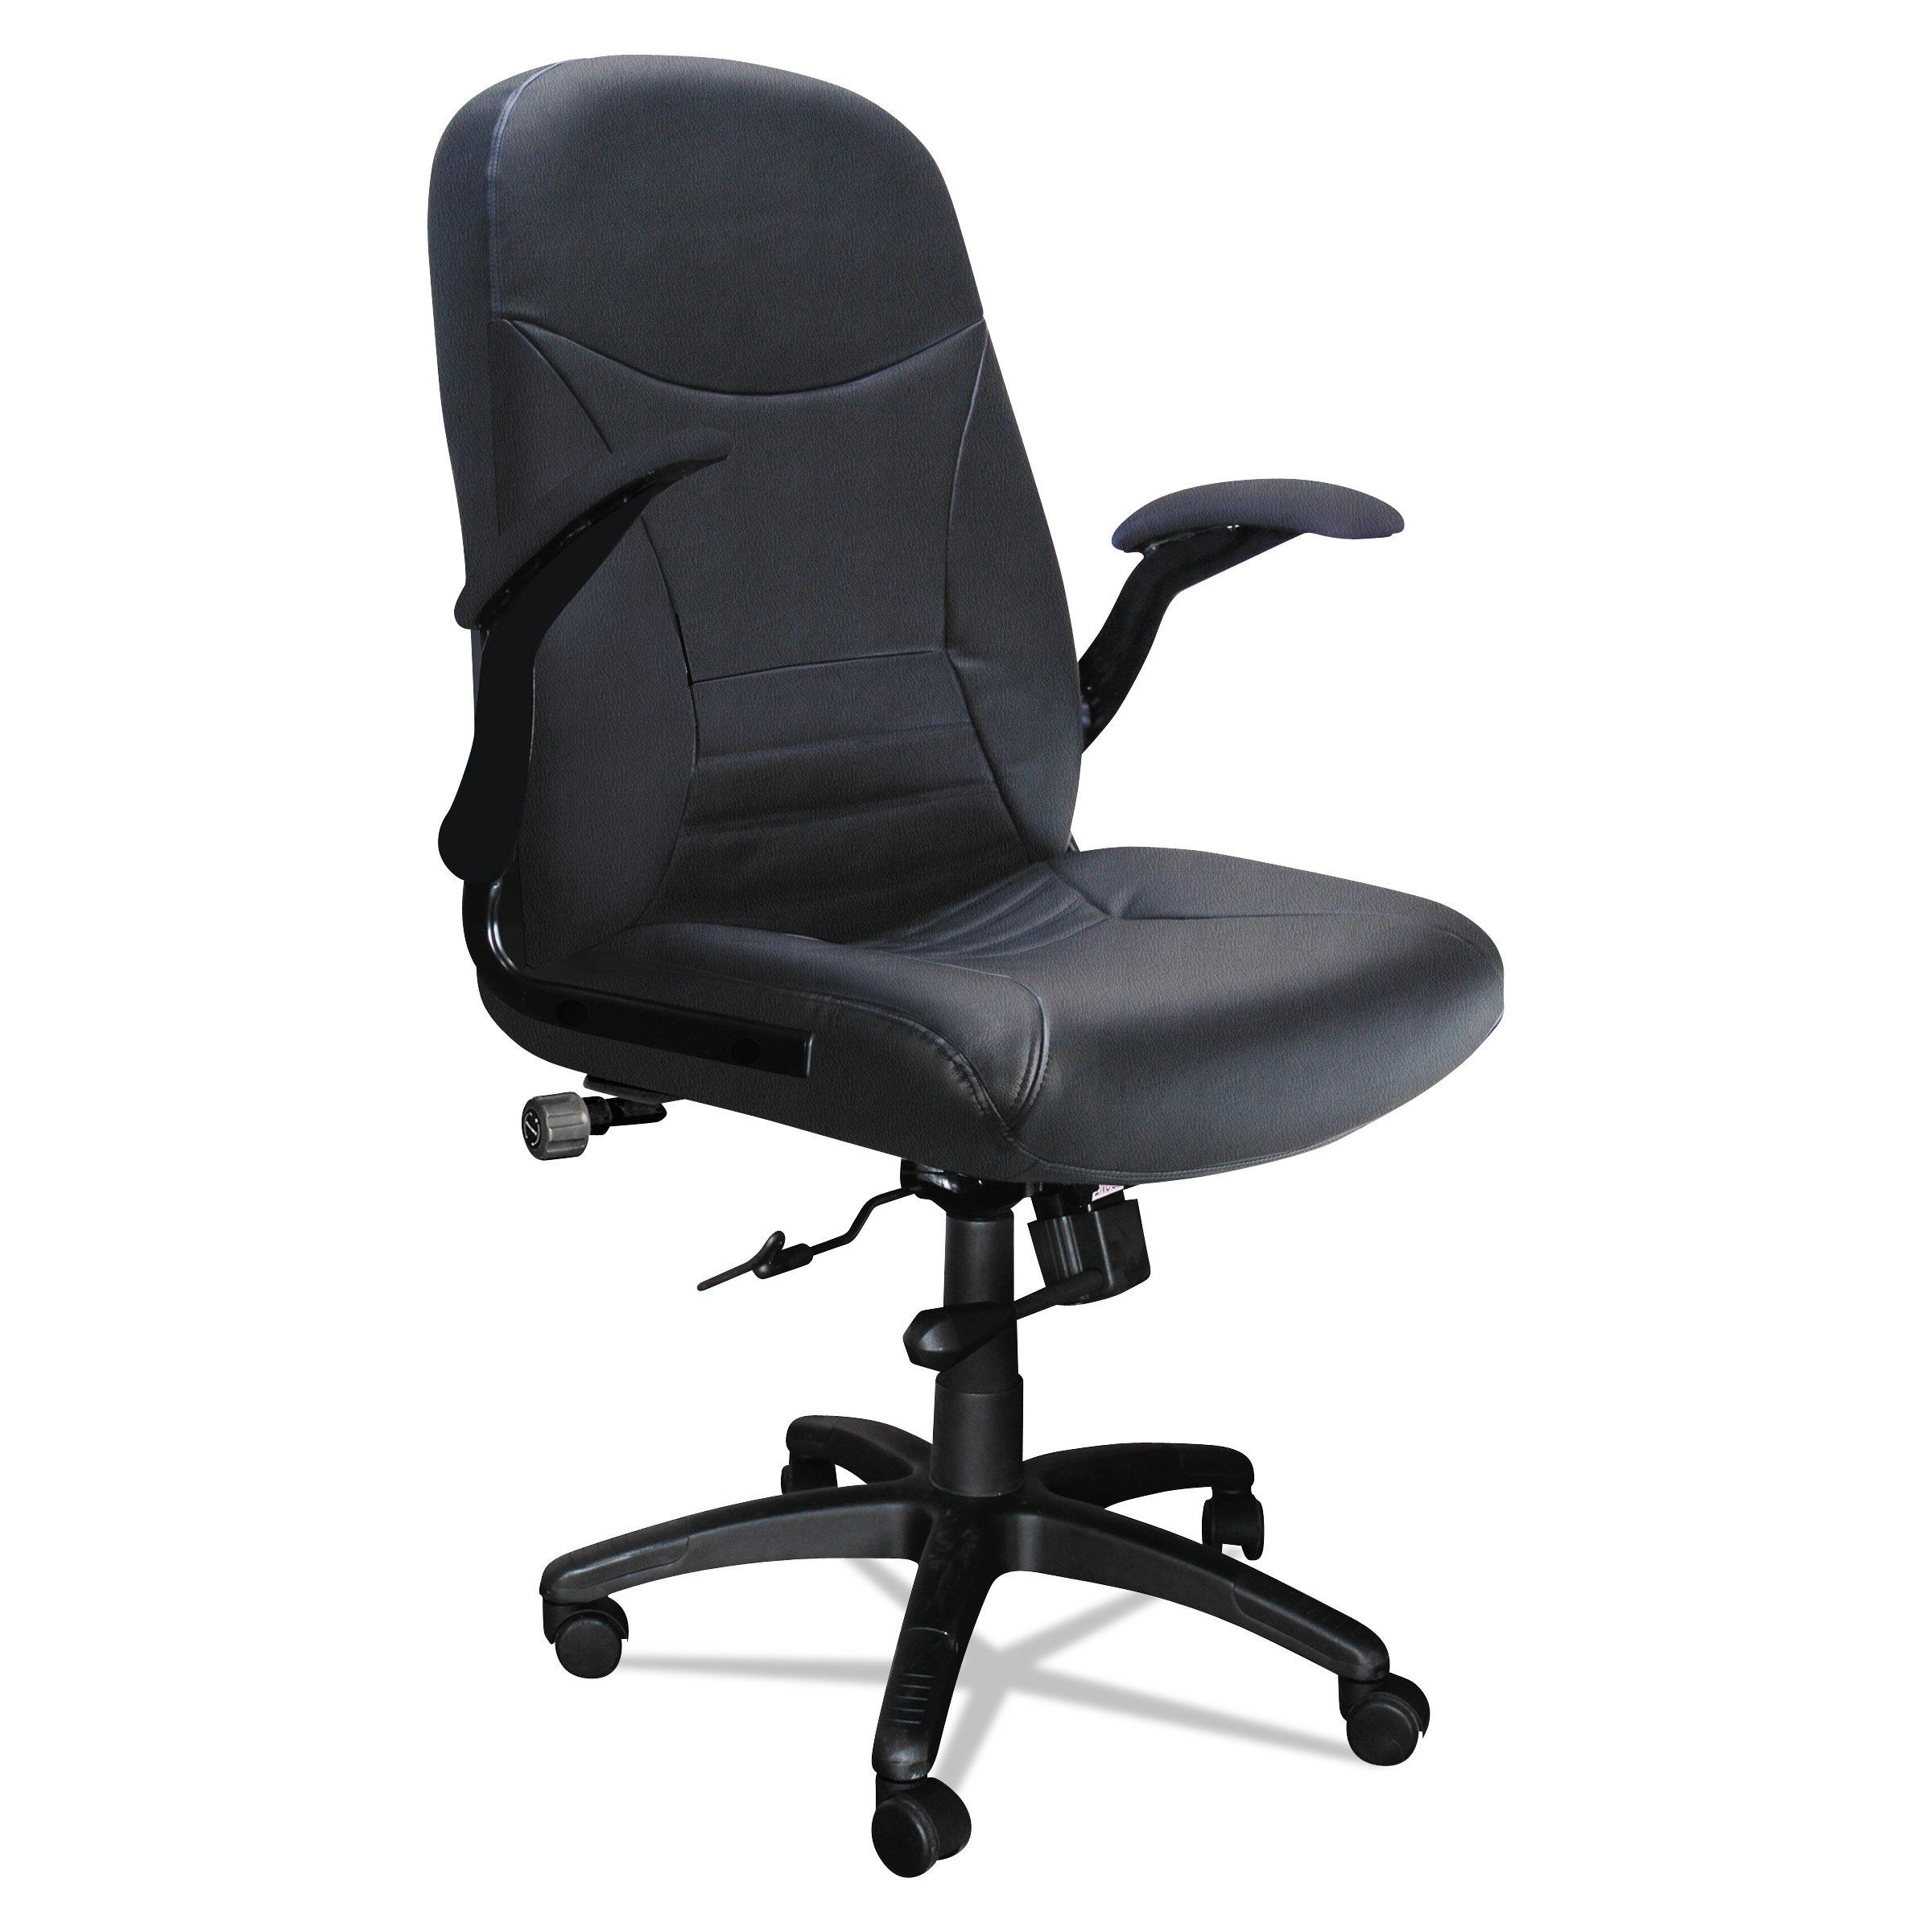 Mayline Comfort Chair Pivot Leather Office Chair Chair Executive Chair